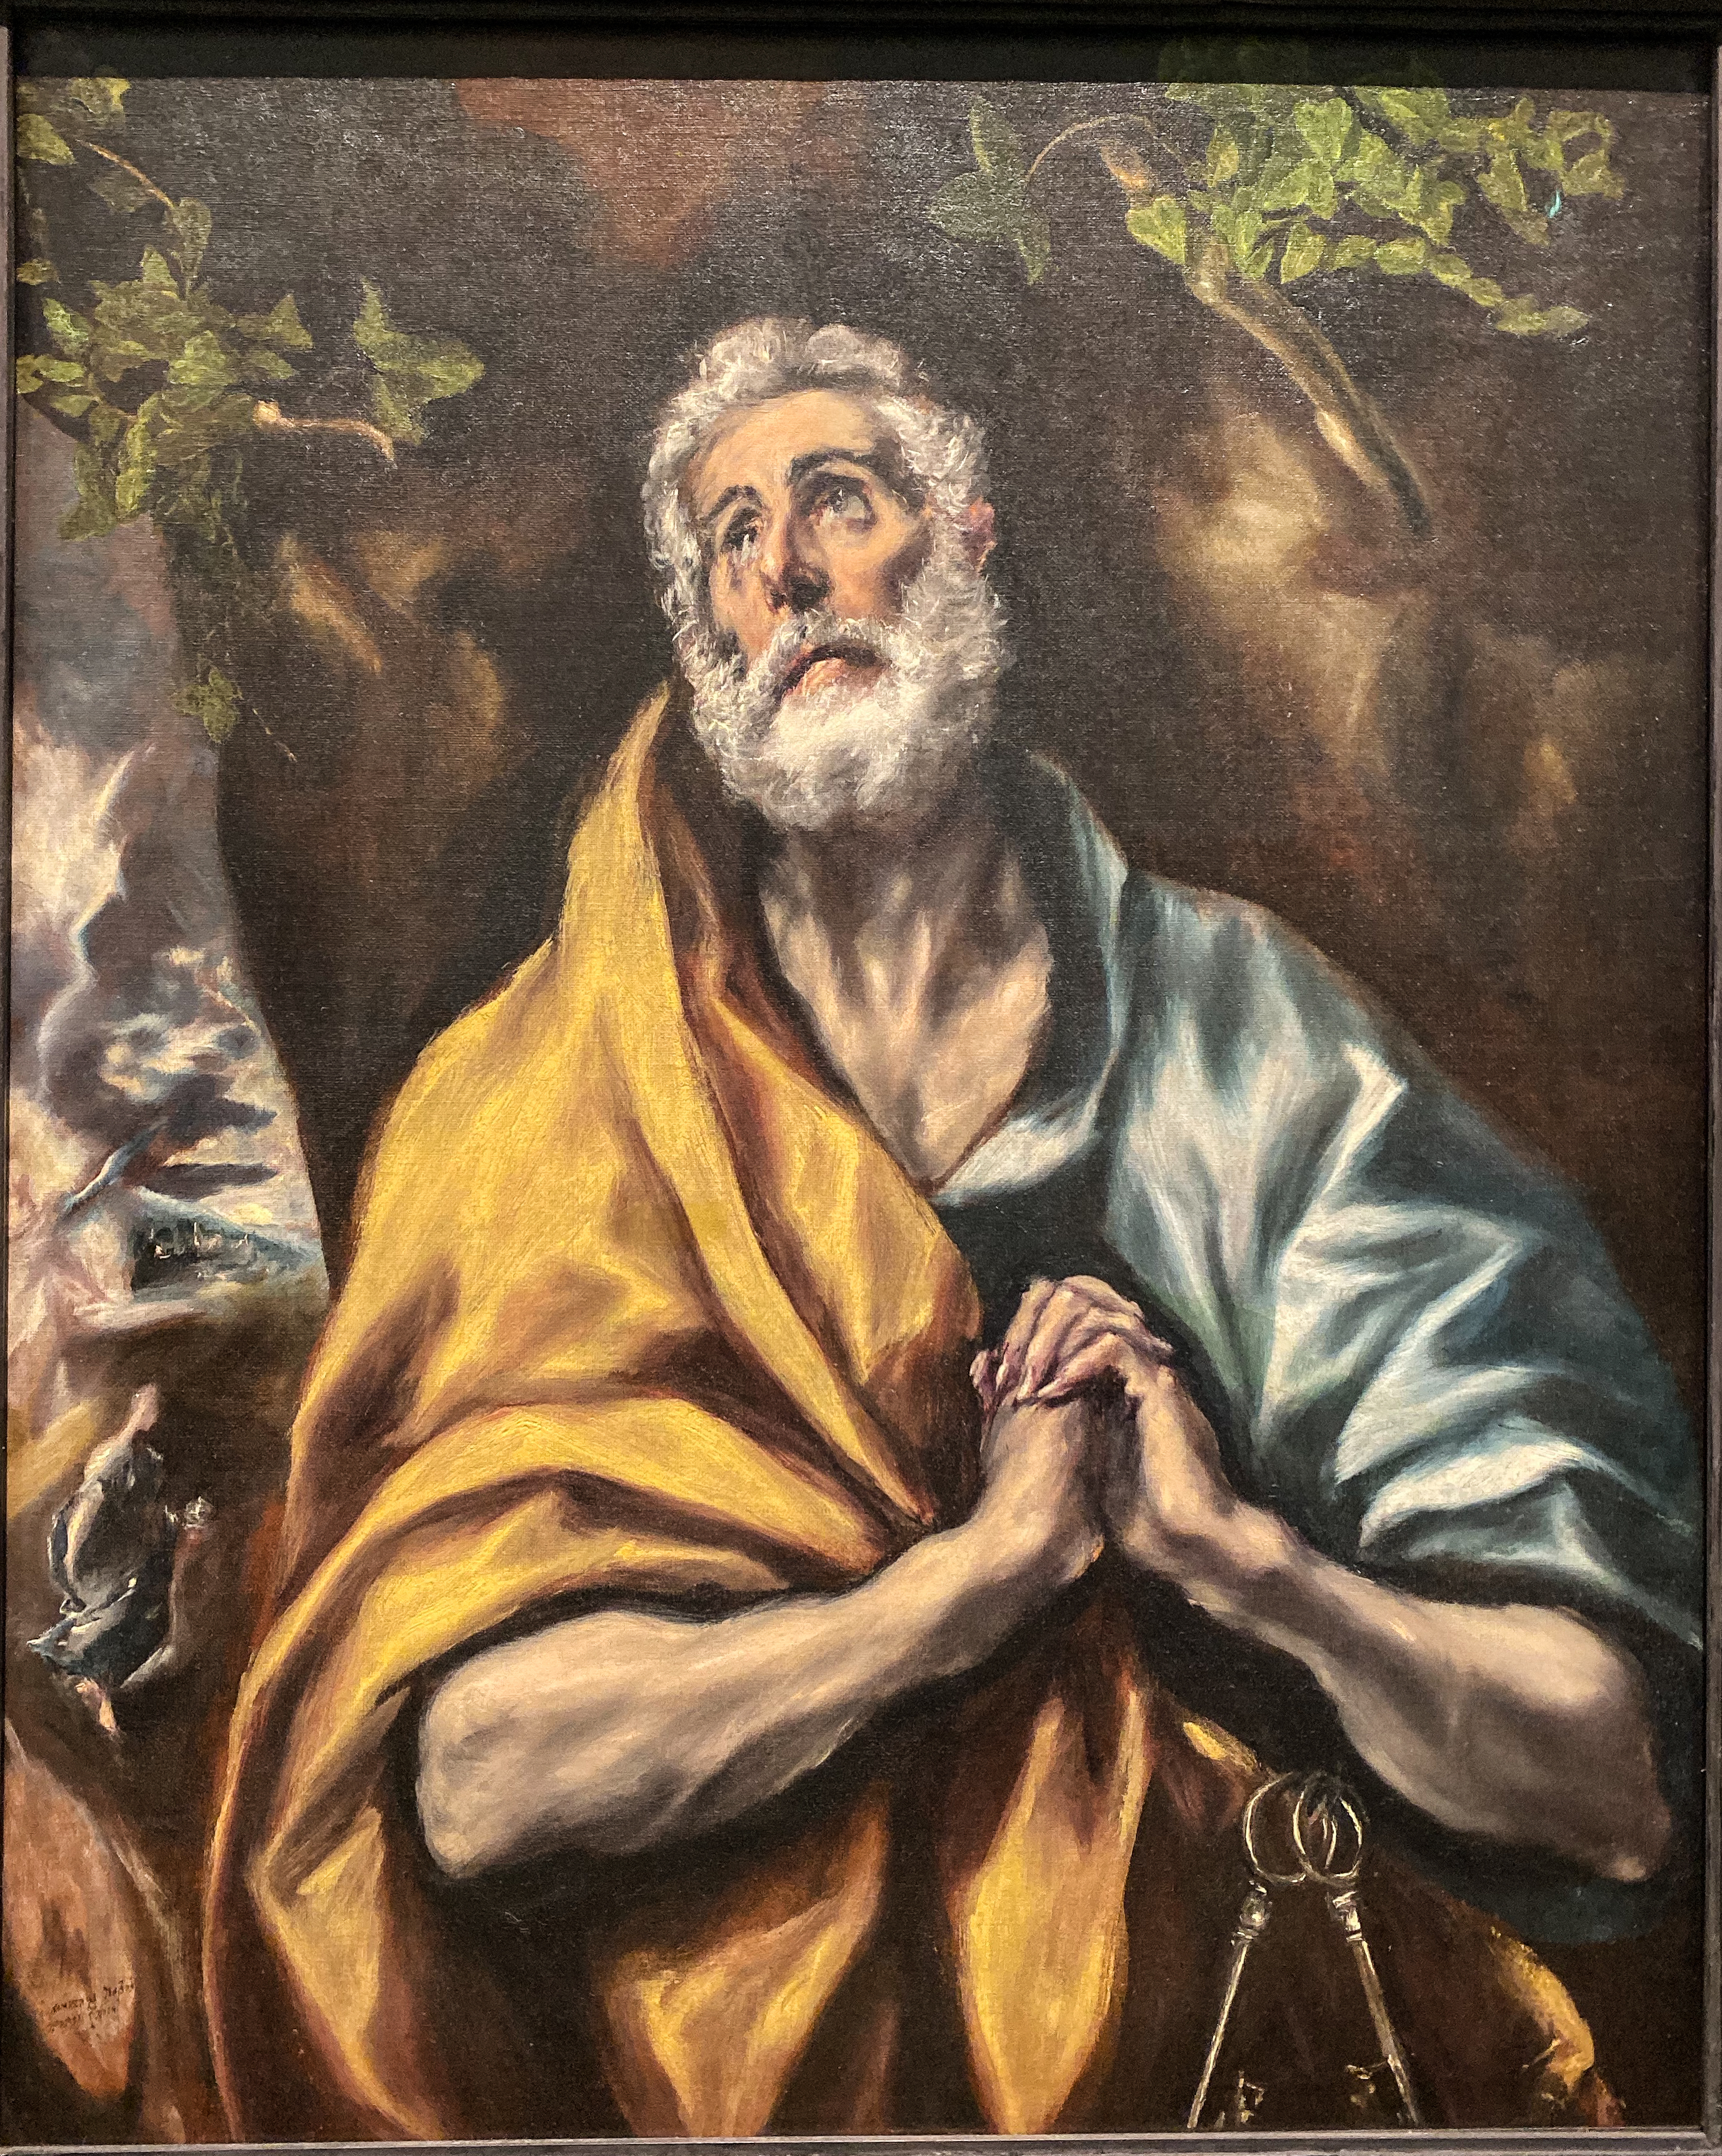 El Greco Hl. Petrus Phillips Collection